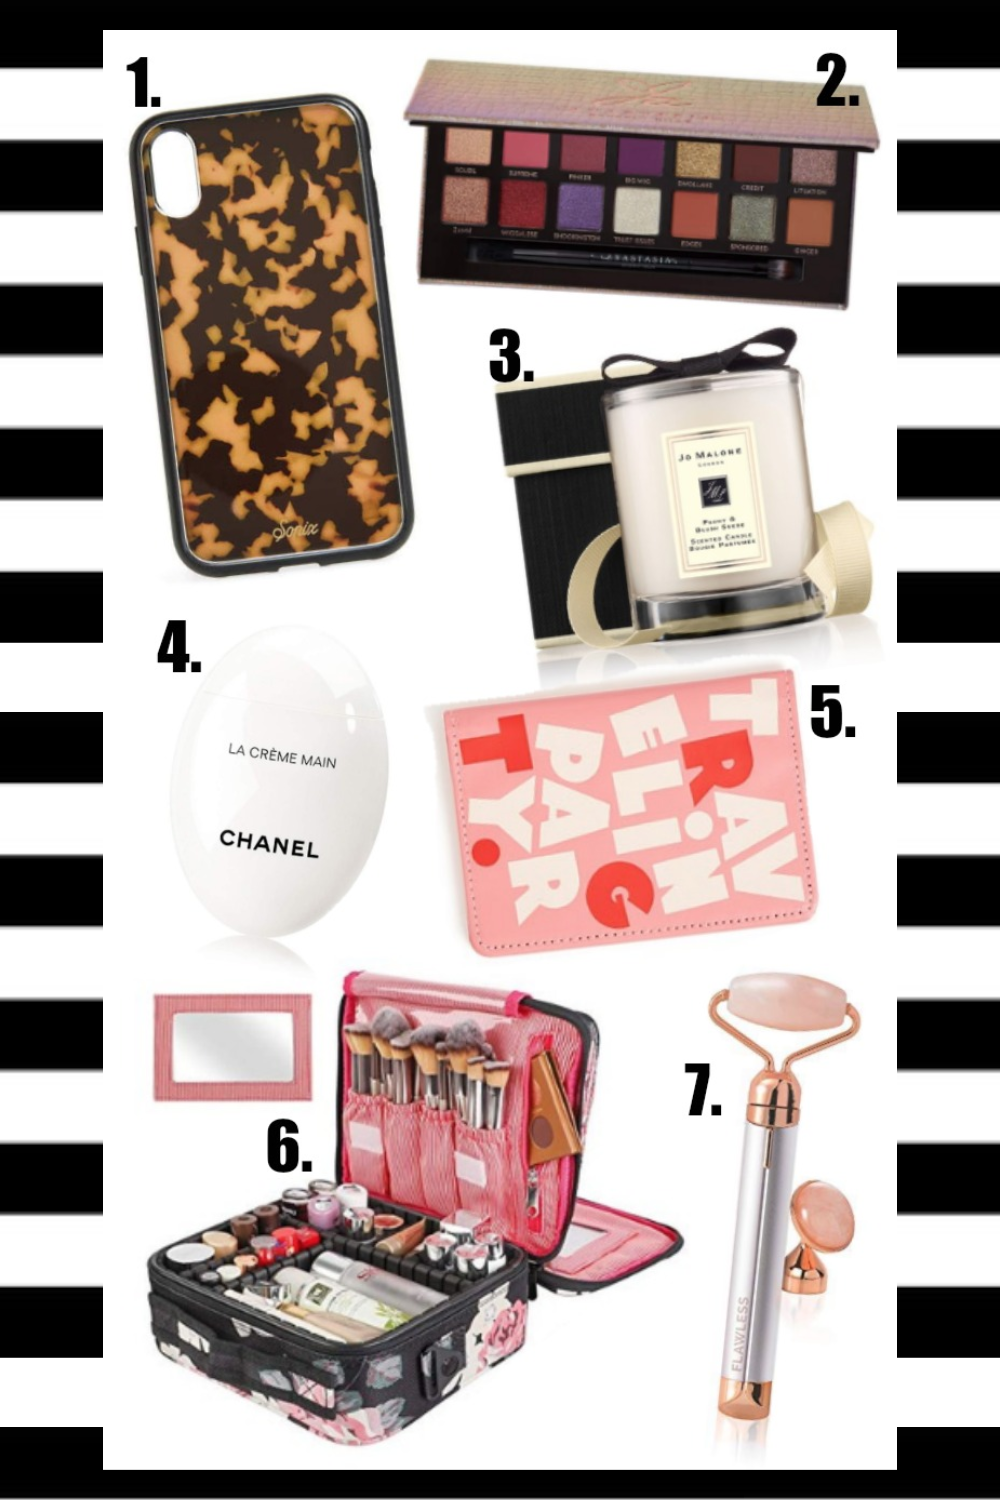 2019 christmas gifts under $50 from supplechic a fashion and lifestyle blog based in Baltimore